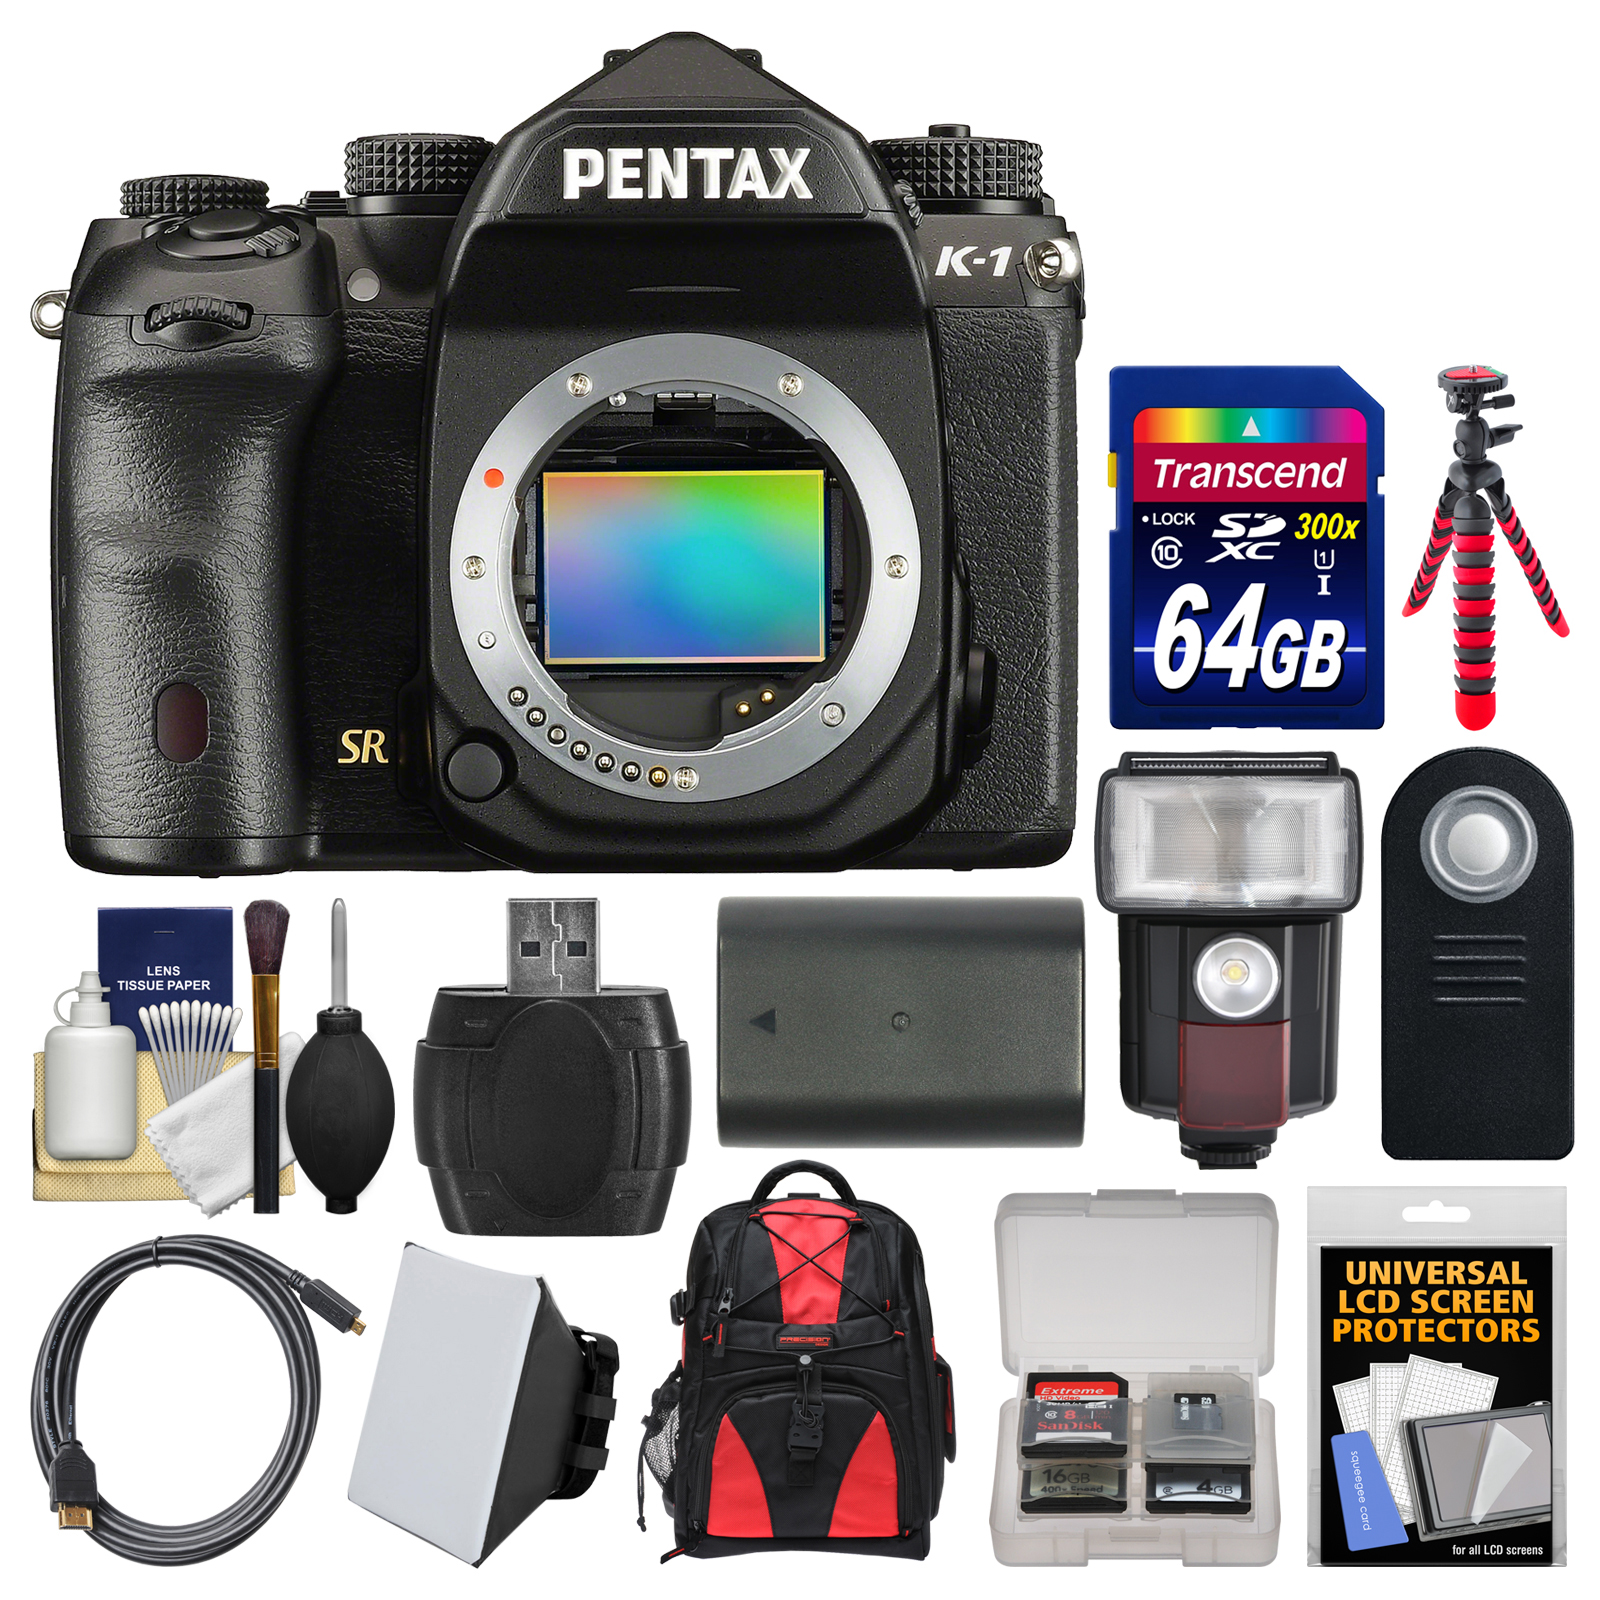 Pentax K-1 Full Frame Wi-Fi Digital SLR Camera Body with 64GB Card + Case + Flash + Soft Box + Battery + Flex Tripod + Kit